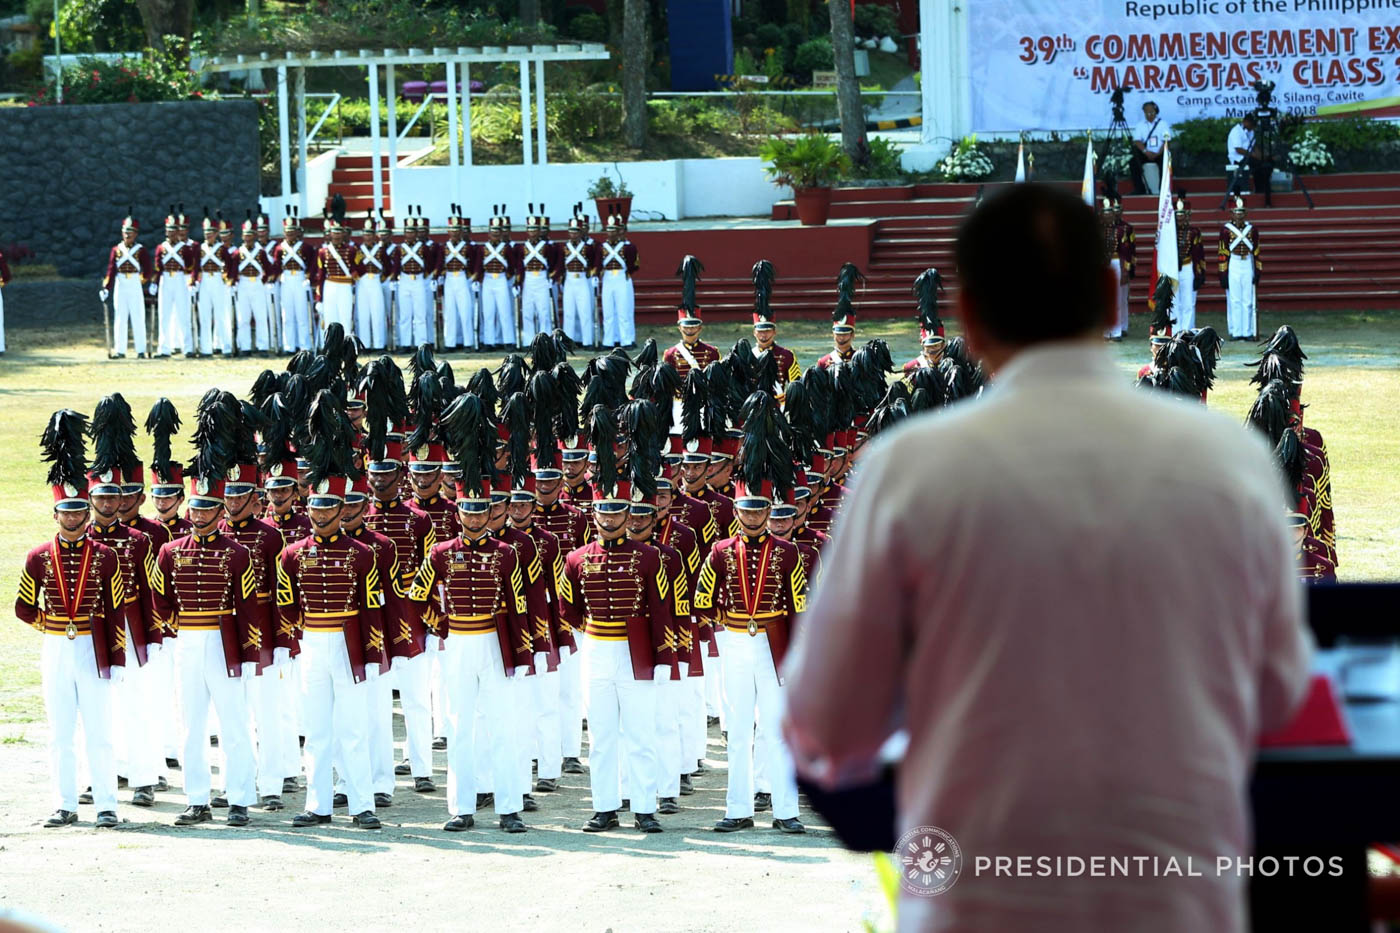 TROUBLE INSIDE PNPA. President Rodrigo Roa Duterte delivers his speech during the 39th Philippine National Police Academy (PNPA) Commencement Exercises for the 'Maragtas' Class of 2018 at Camp General Mariano N. Castau00f1eda in Silang, Cavite on March 21, 2018. Malacau00f1ang photo